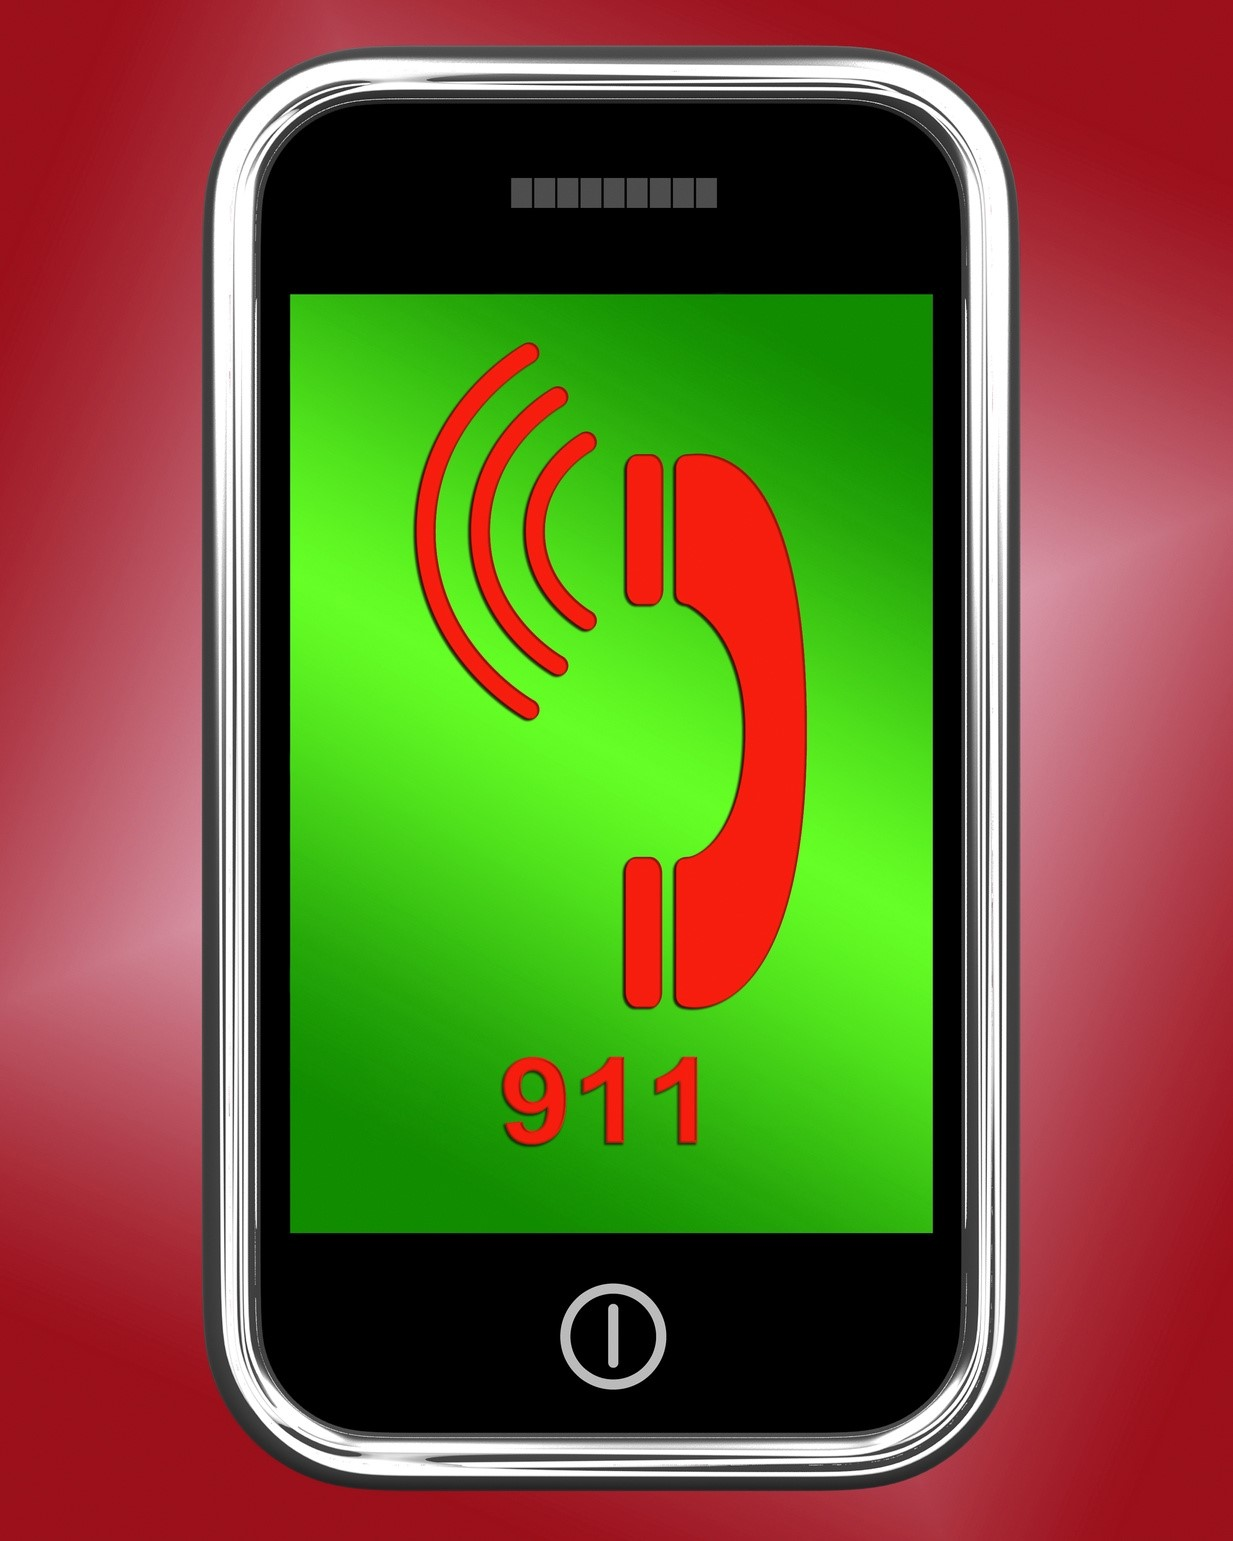 911 emergency calls location rules